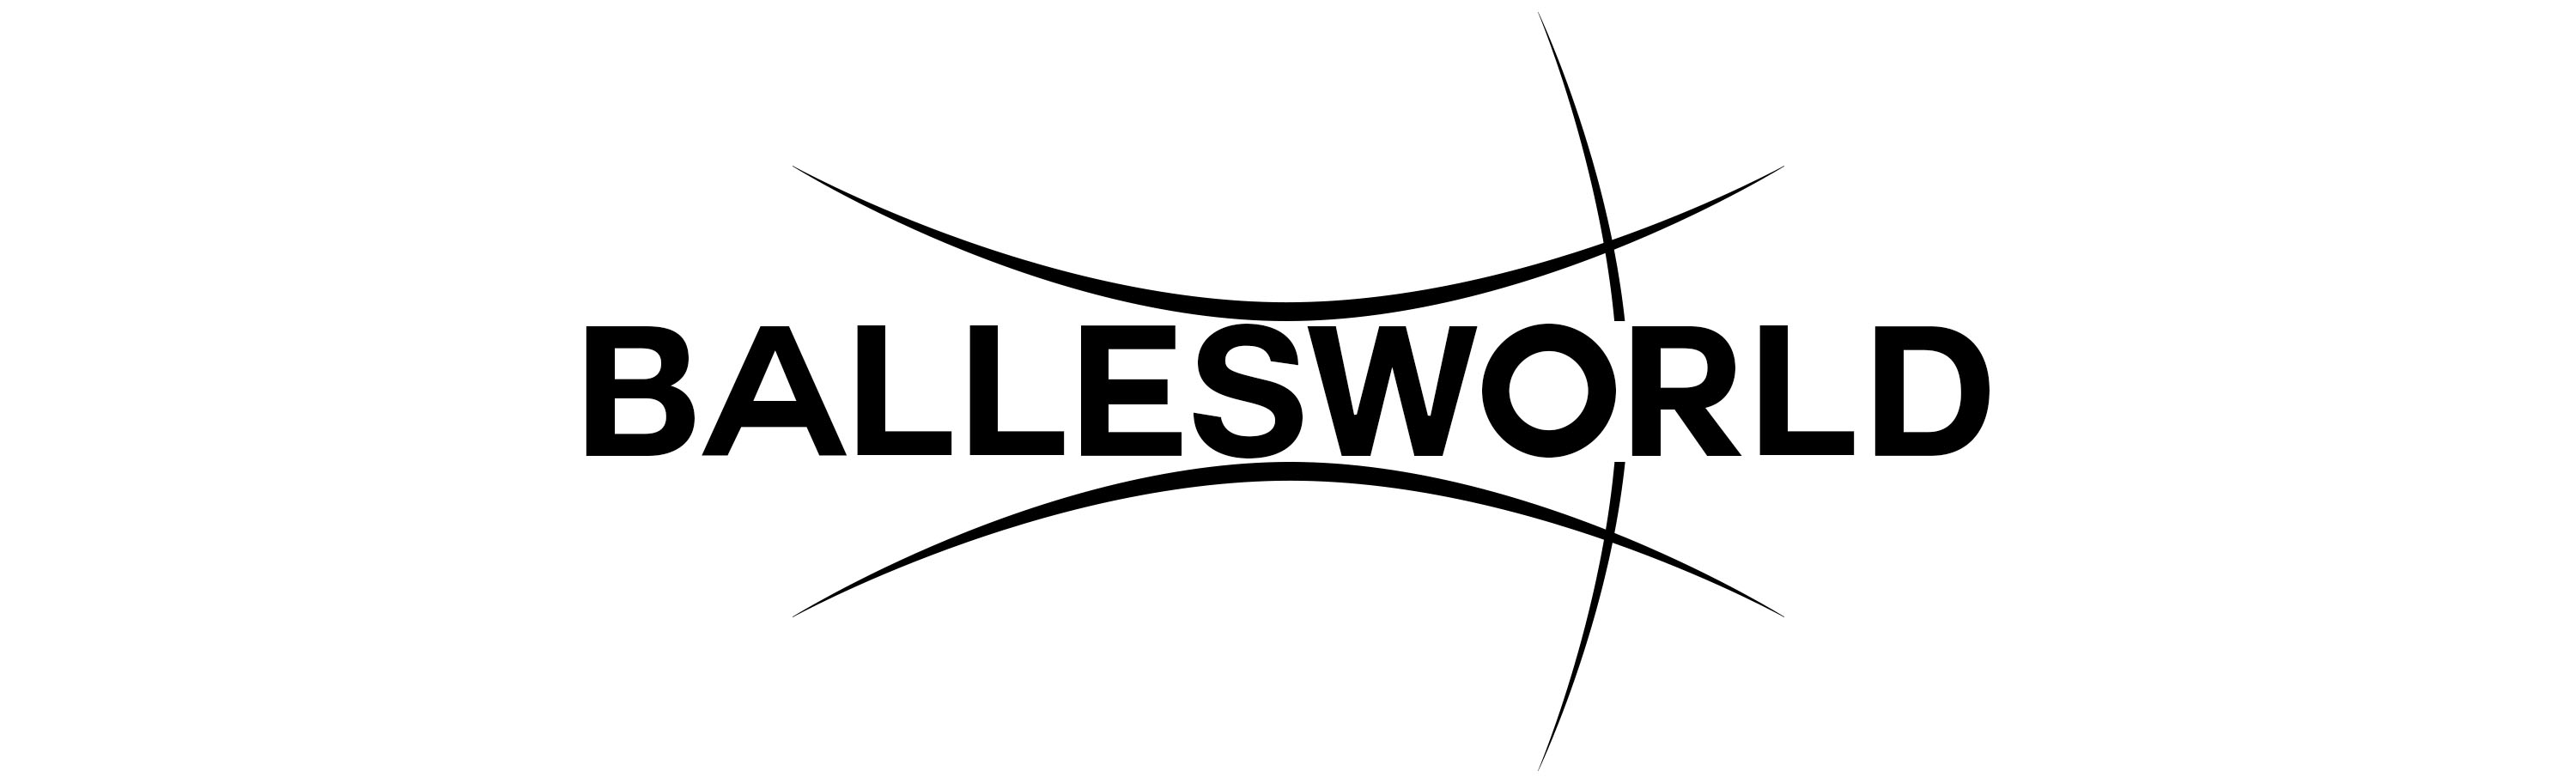 BallesWorld